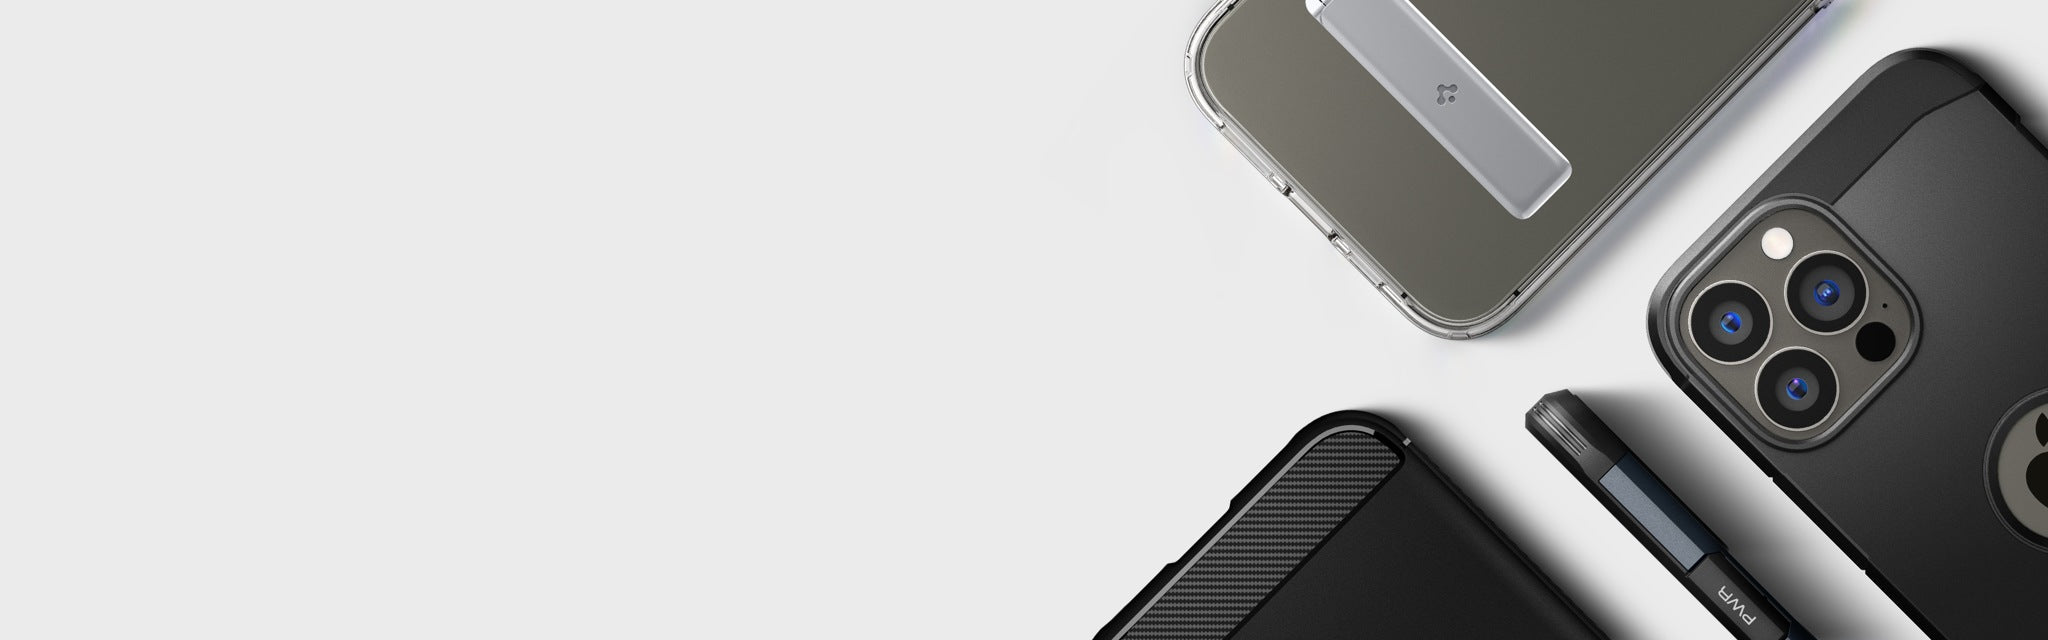 Spigen Cases for iPhone 13 Pro Max Collection